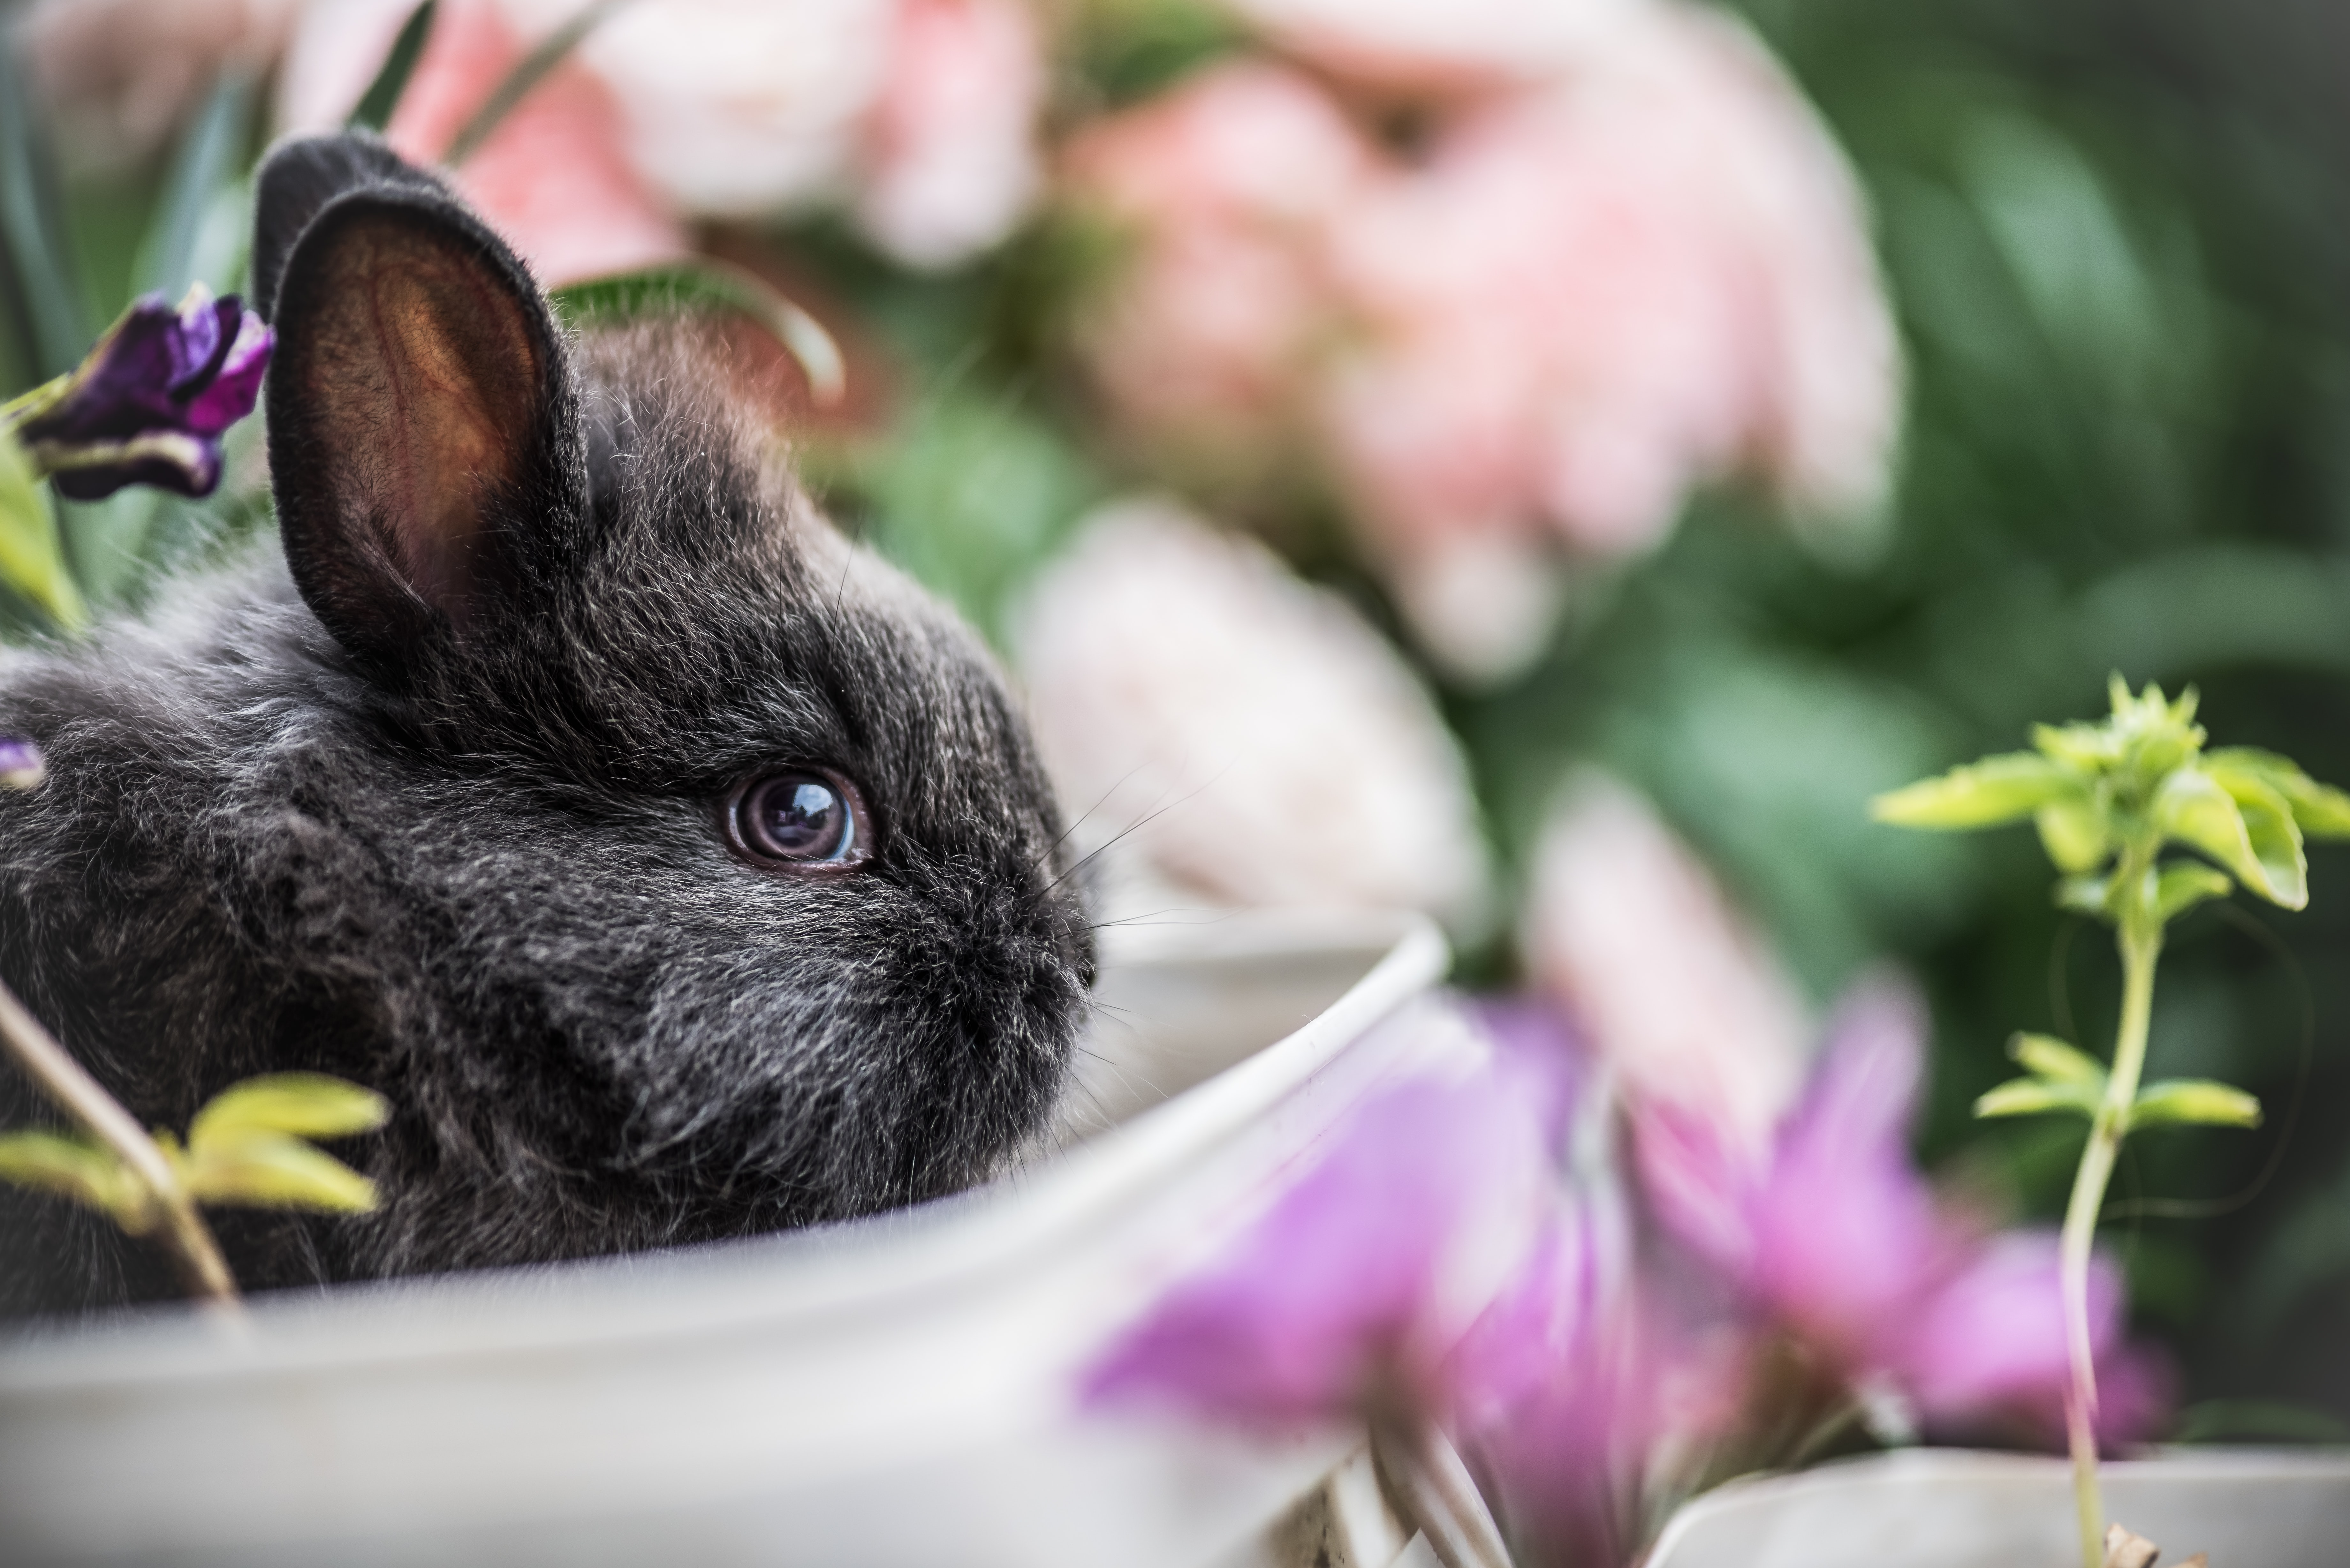 A black baby rabbit beside potted plants and flowers